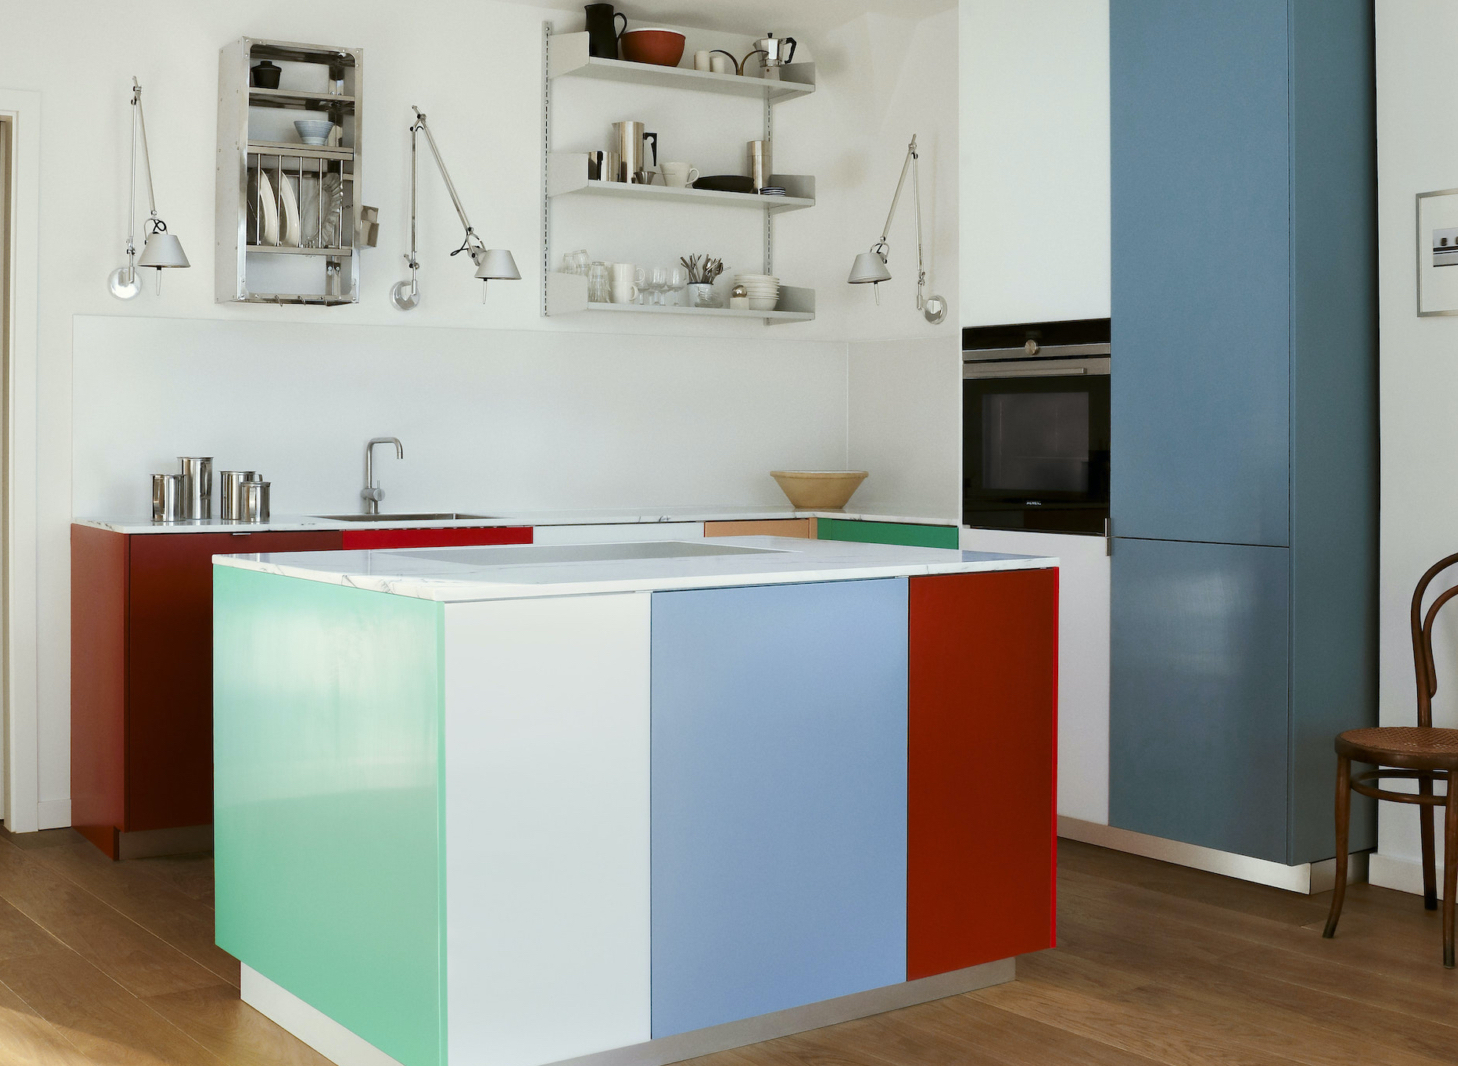 reform kitchen berlin colorful cabinets match3 1466x1955 1 1458x1066